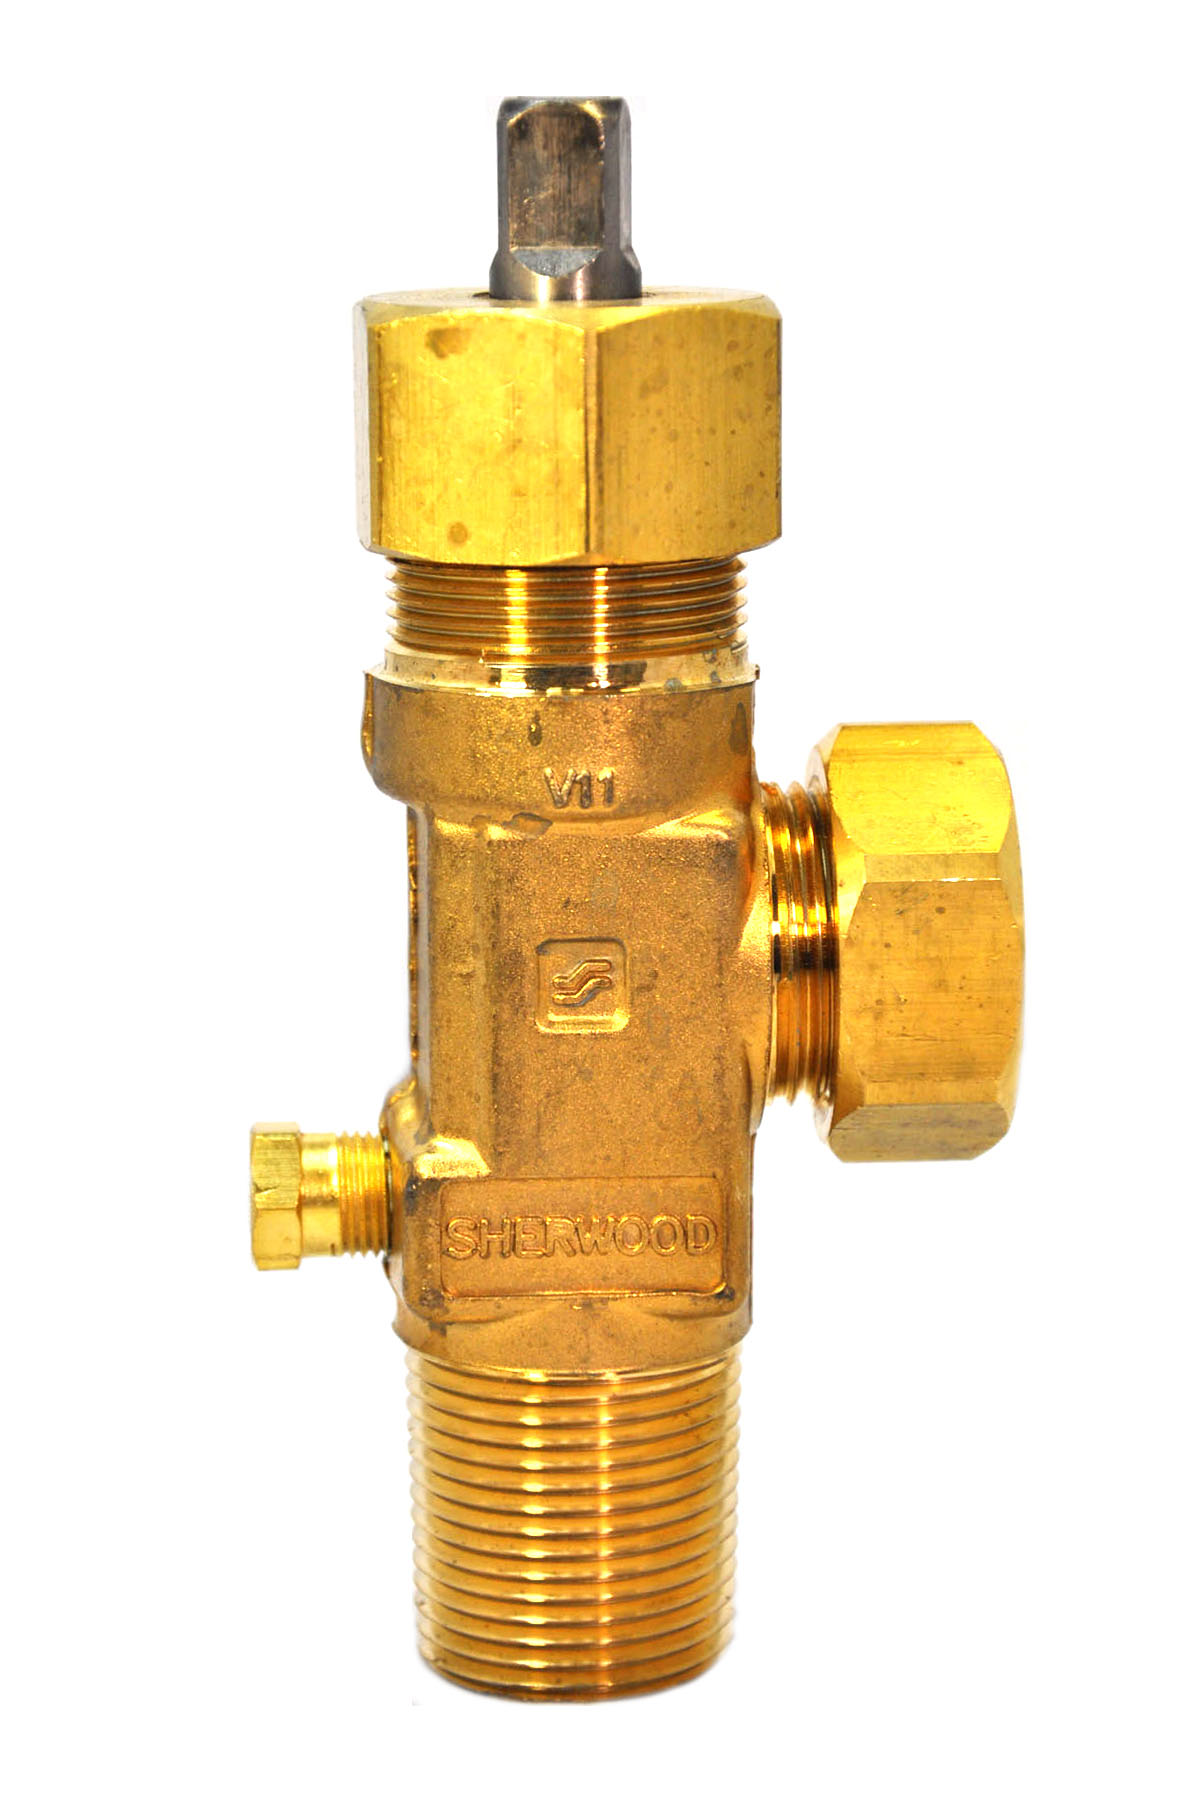 Chlorine Gas Valves - Basic Valves